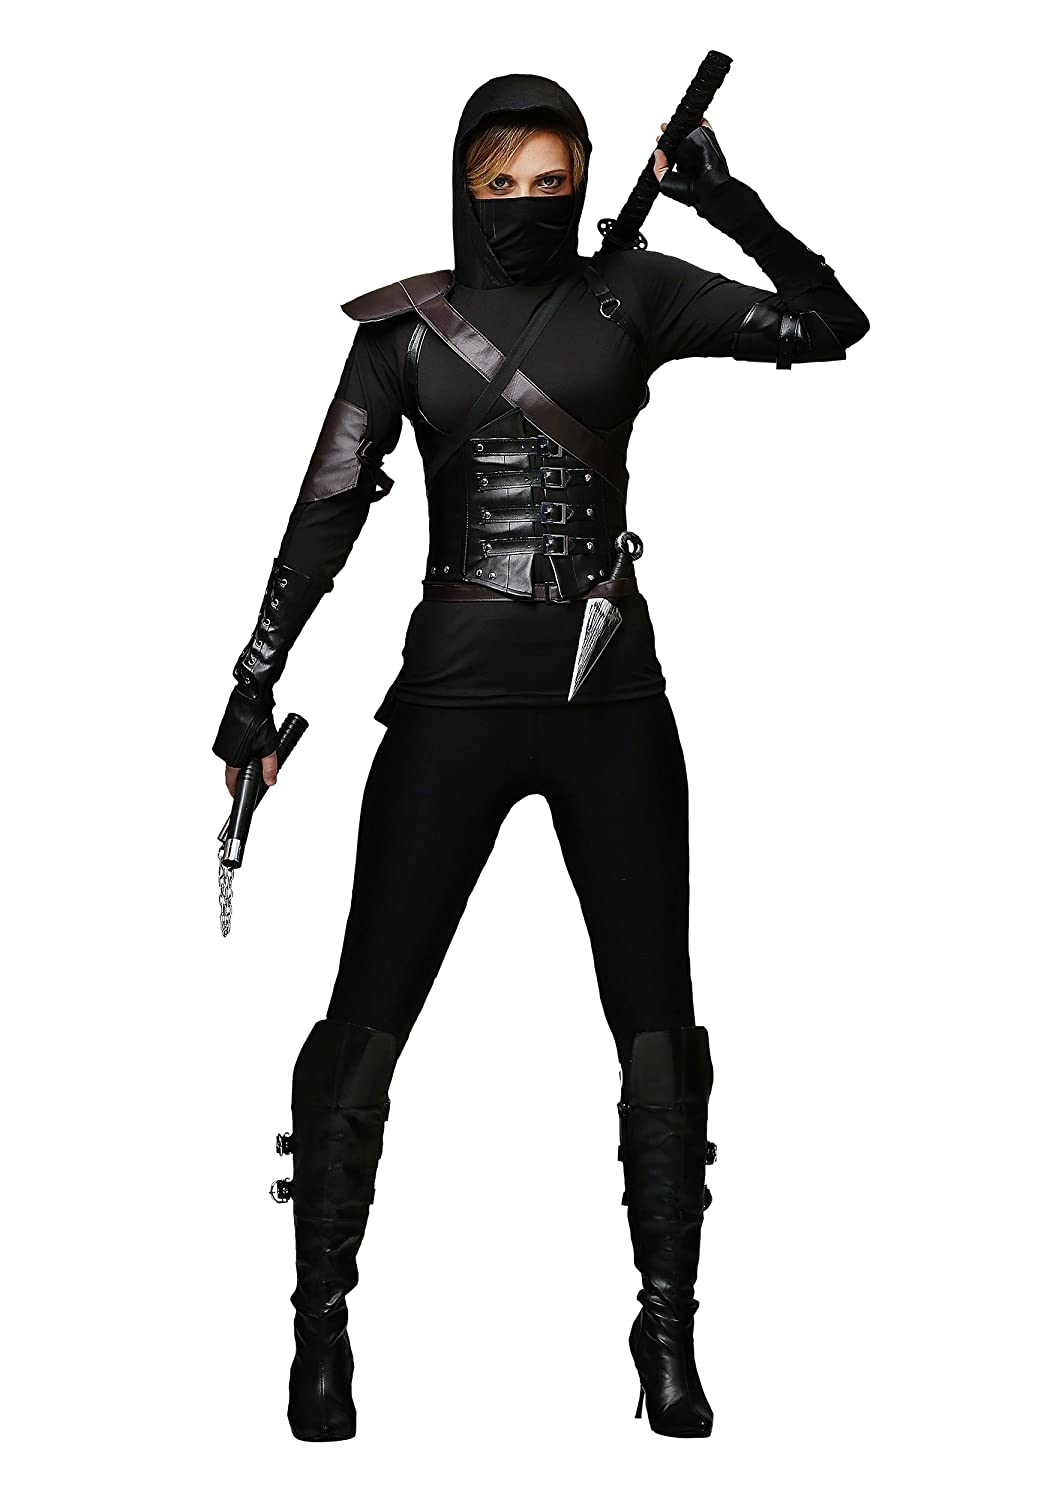 Fun Costumes Exclusive Womens Ninja Assassin Costume Set